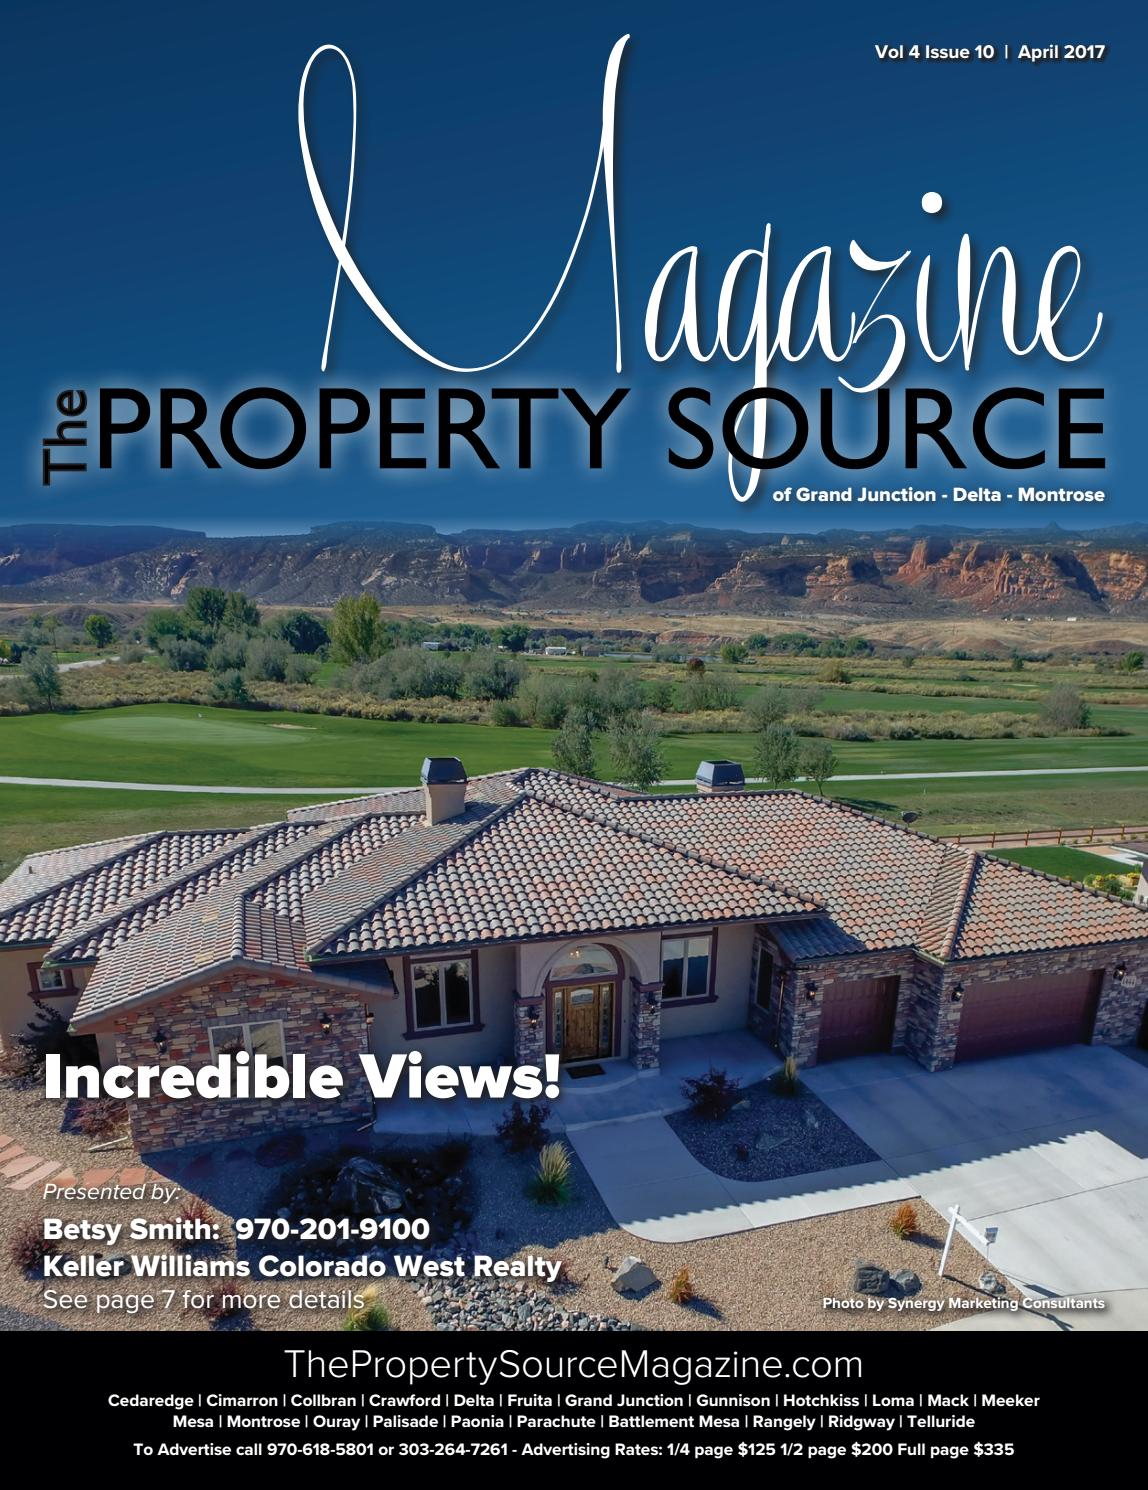 The Property Source Magazine - May 2017 - Grand Junction - Delta - Montrose  by The Property Source Magazine - issuu